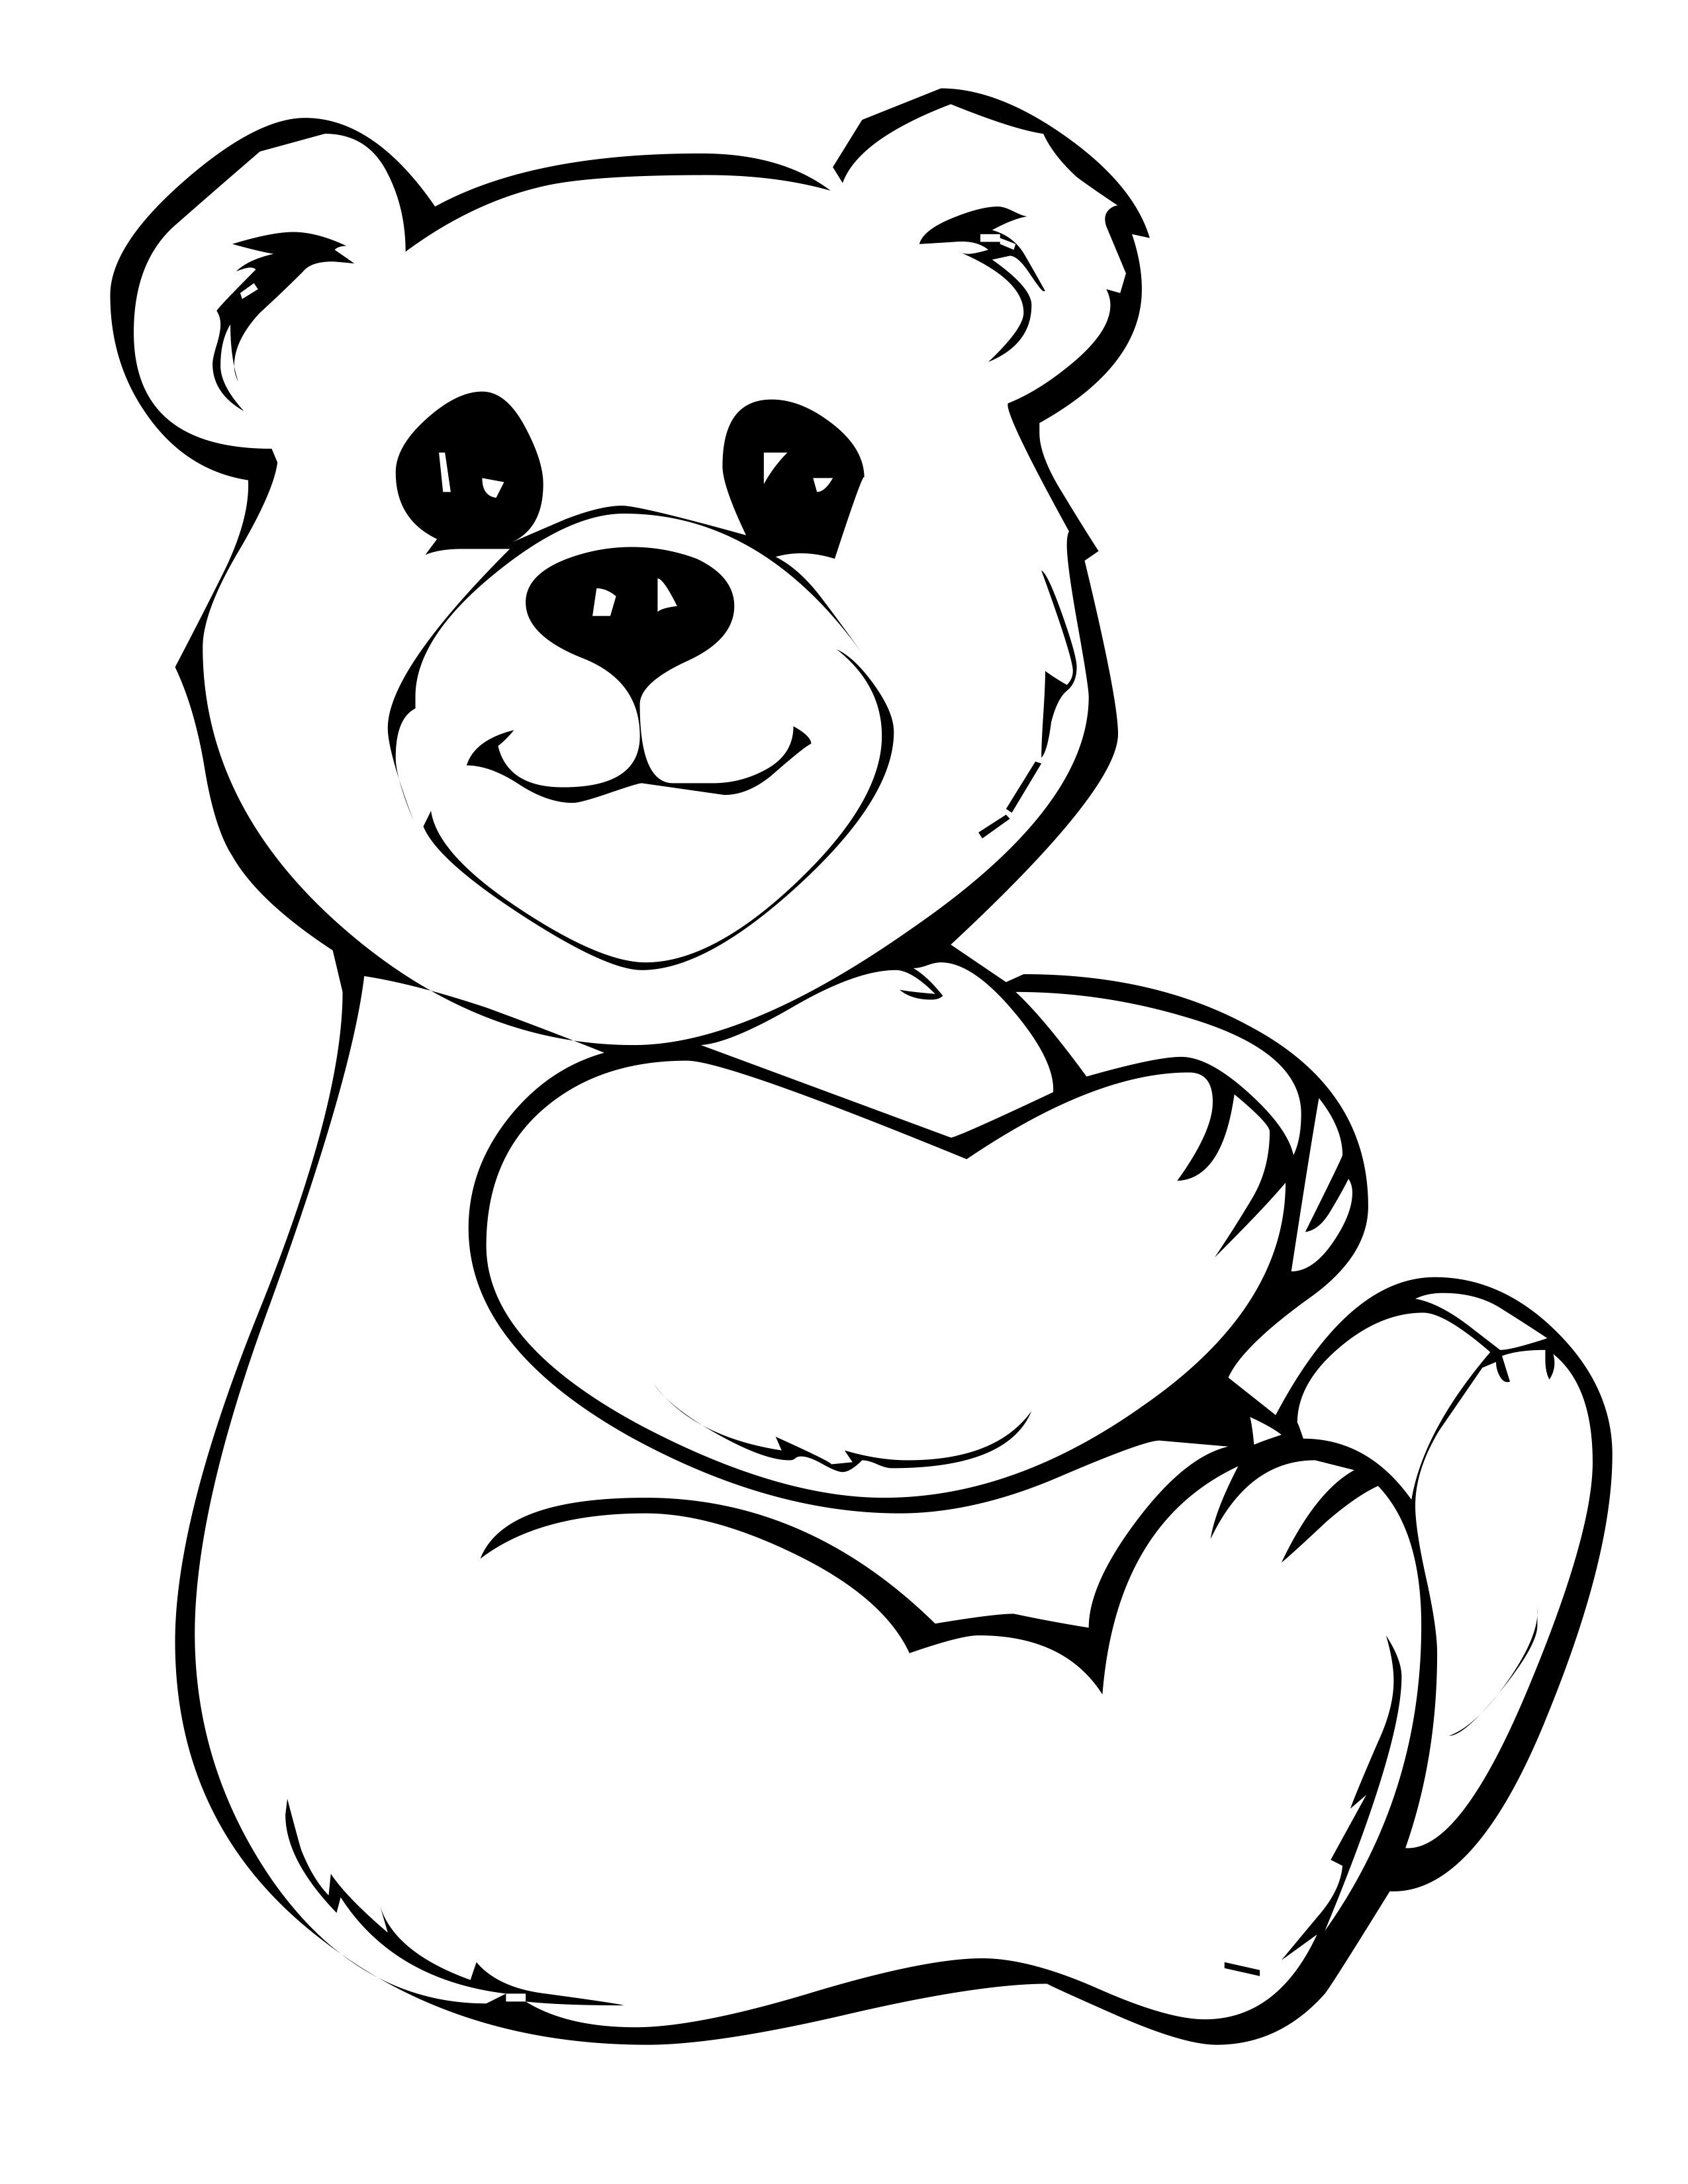 Study Free Printable Teddy Bear Coloring Pages For Kids